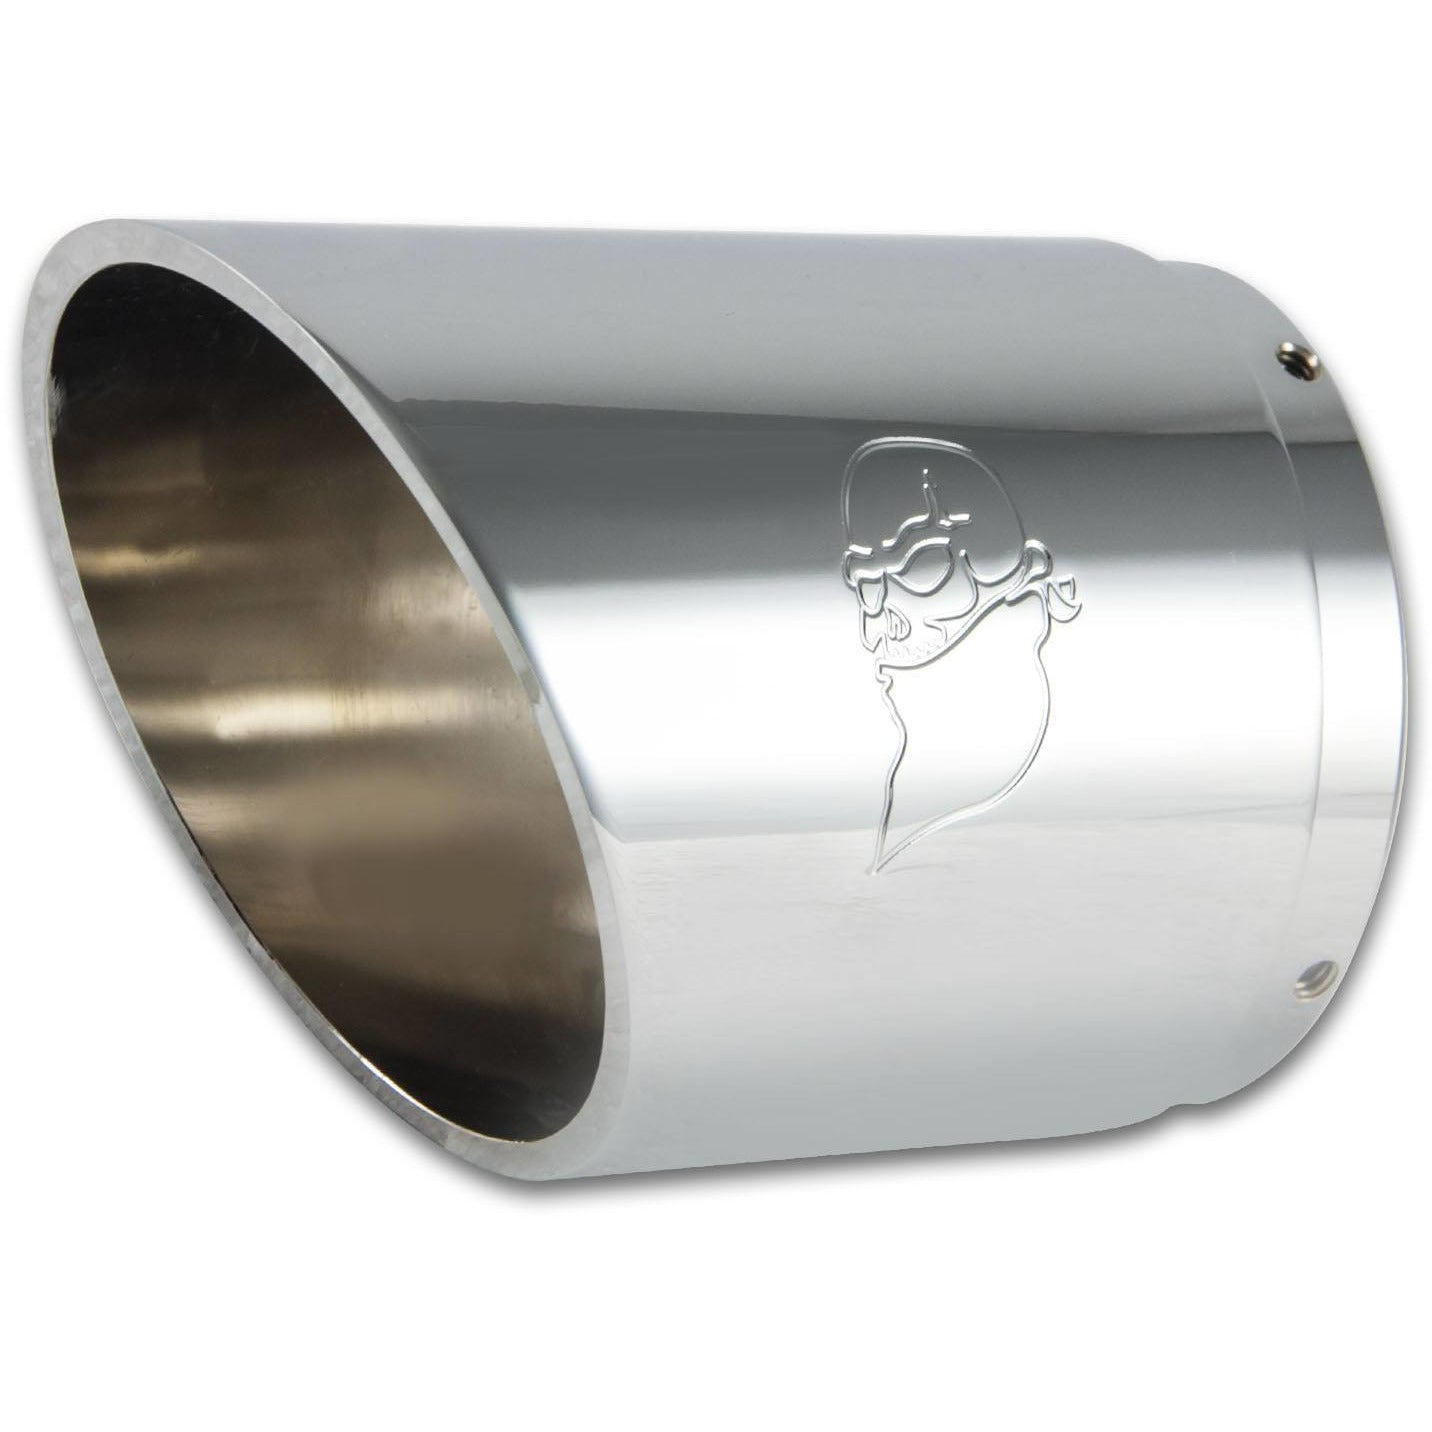 Bagger Brothers Exhaust Kory Souza Designed Tip Fits Python Rayzer Exhaust Chrome